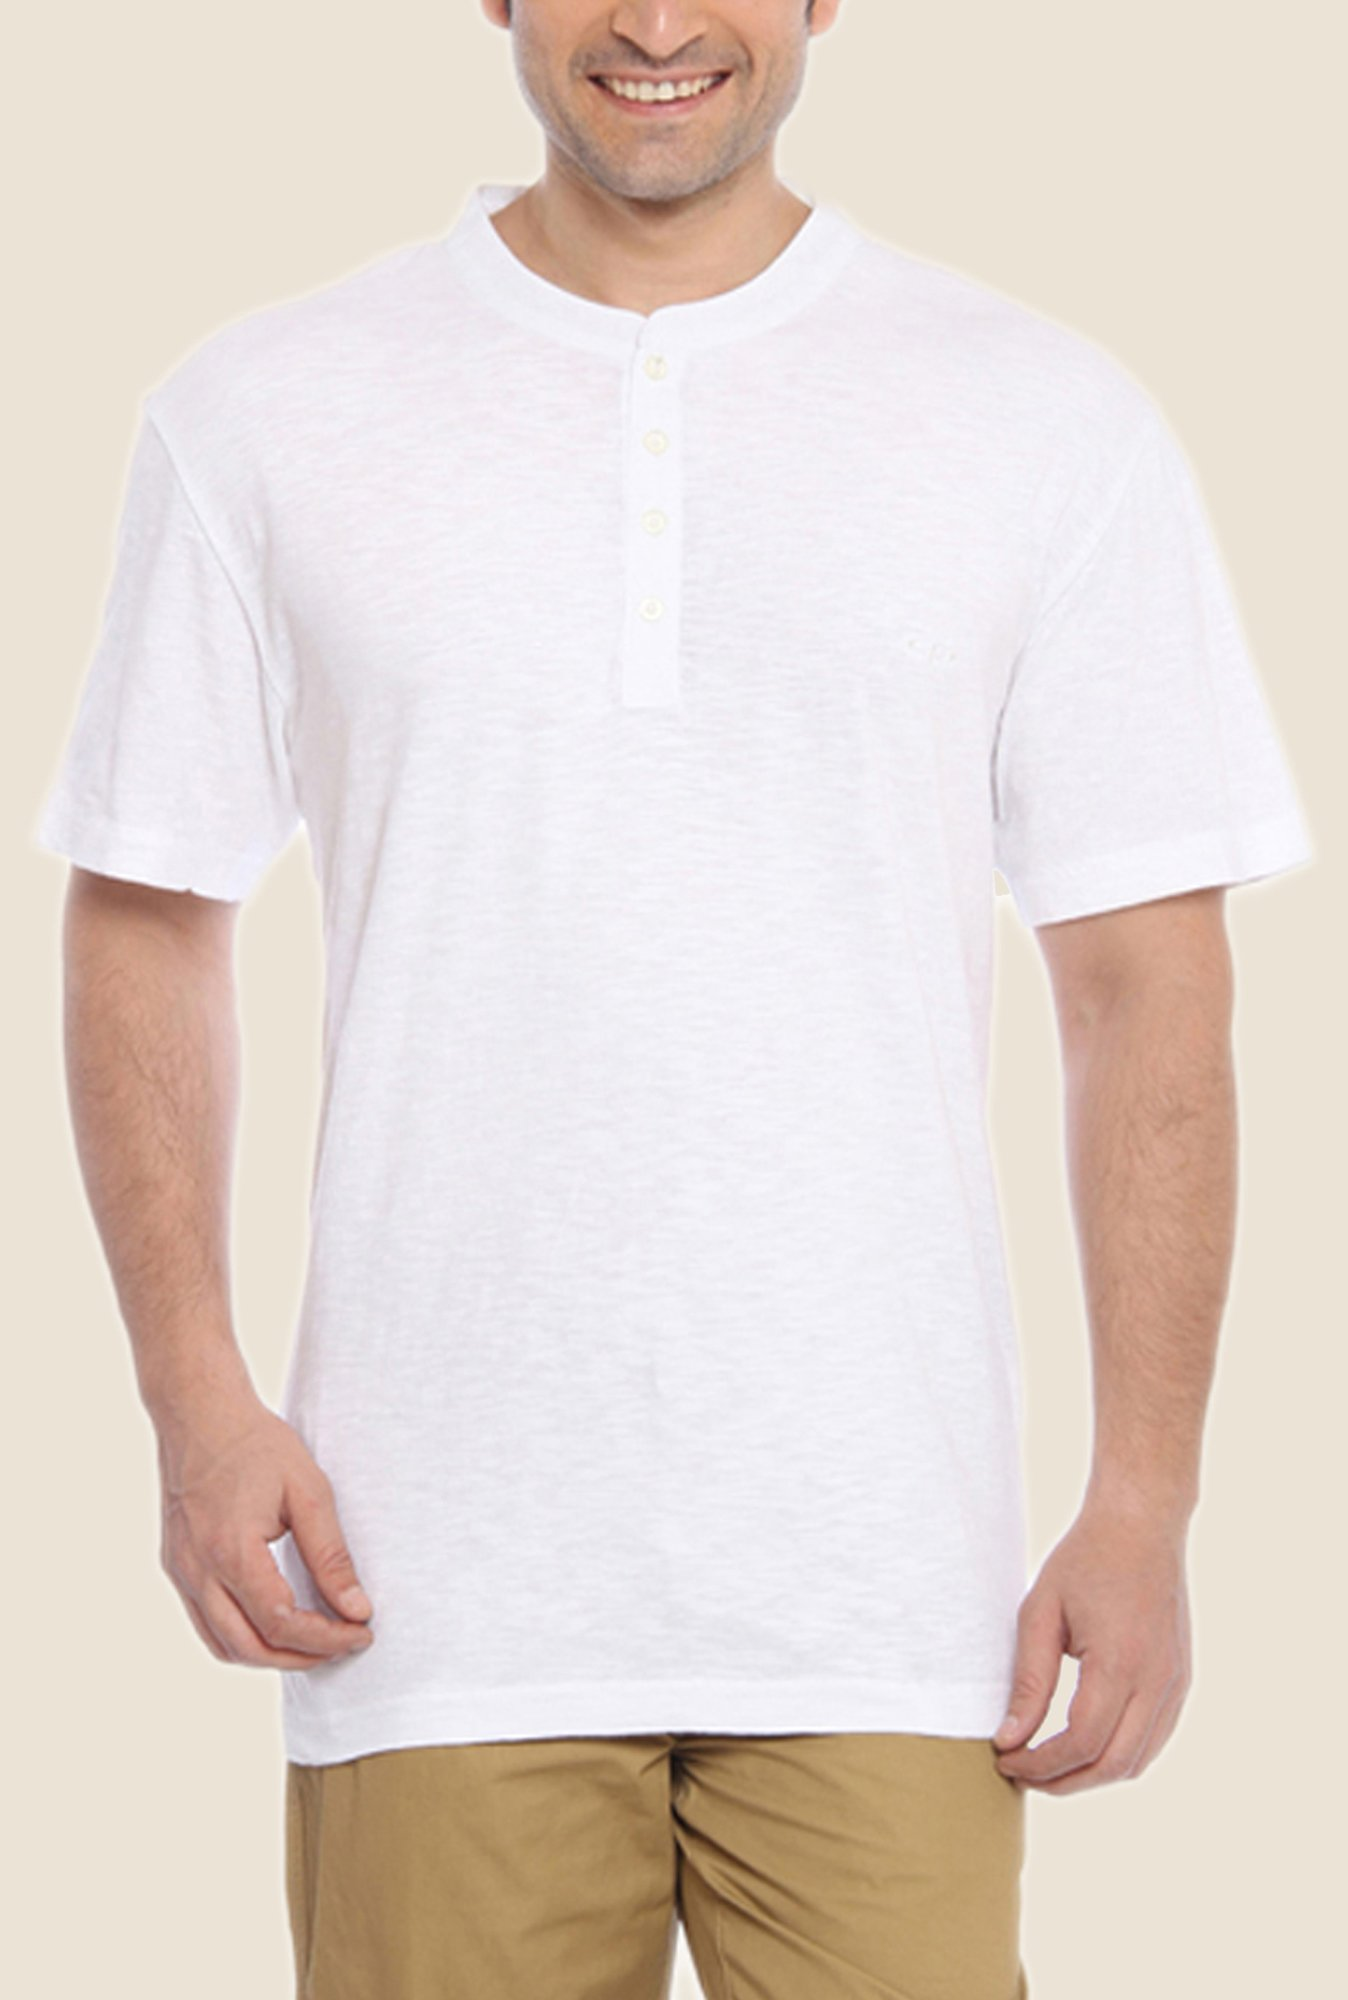 ColorPlus White Solid Henley Neck T Shirt